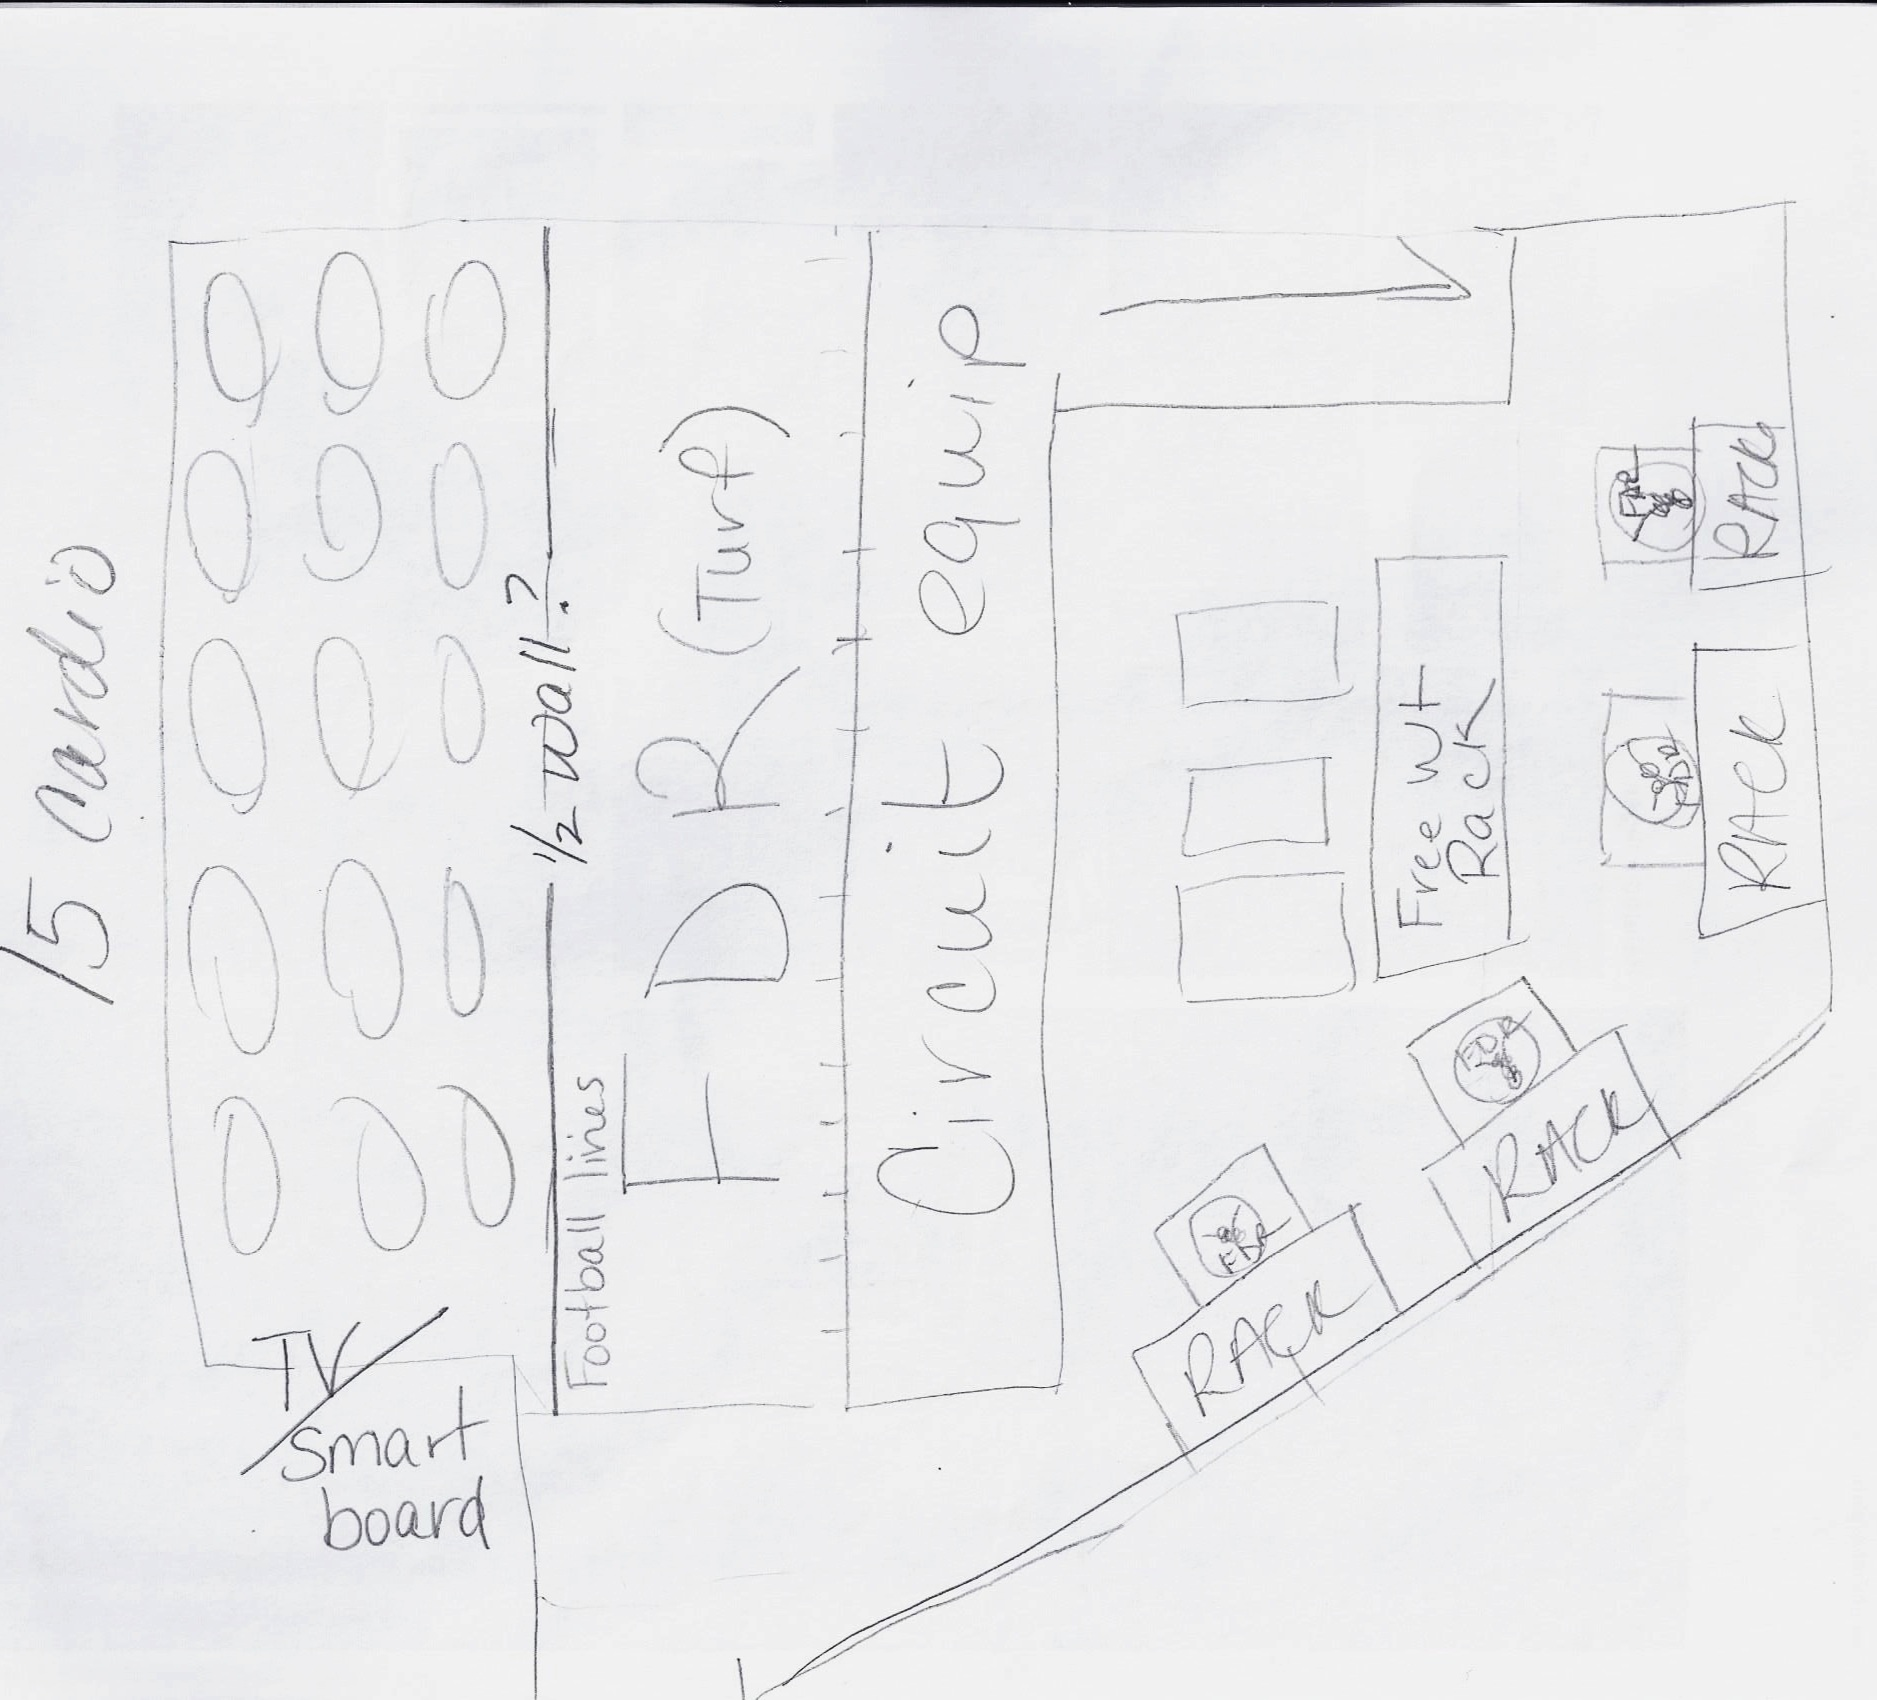 Rough sketch from Hyde Park CSD's Athletic Director, Thomas Cunningham